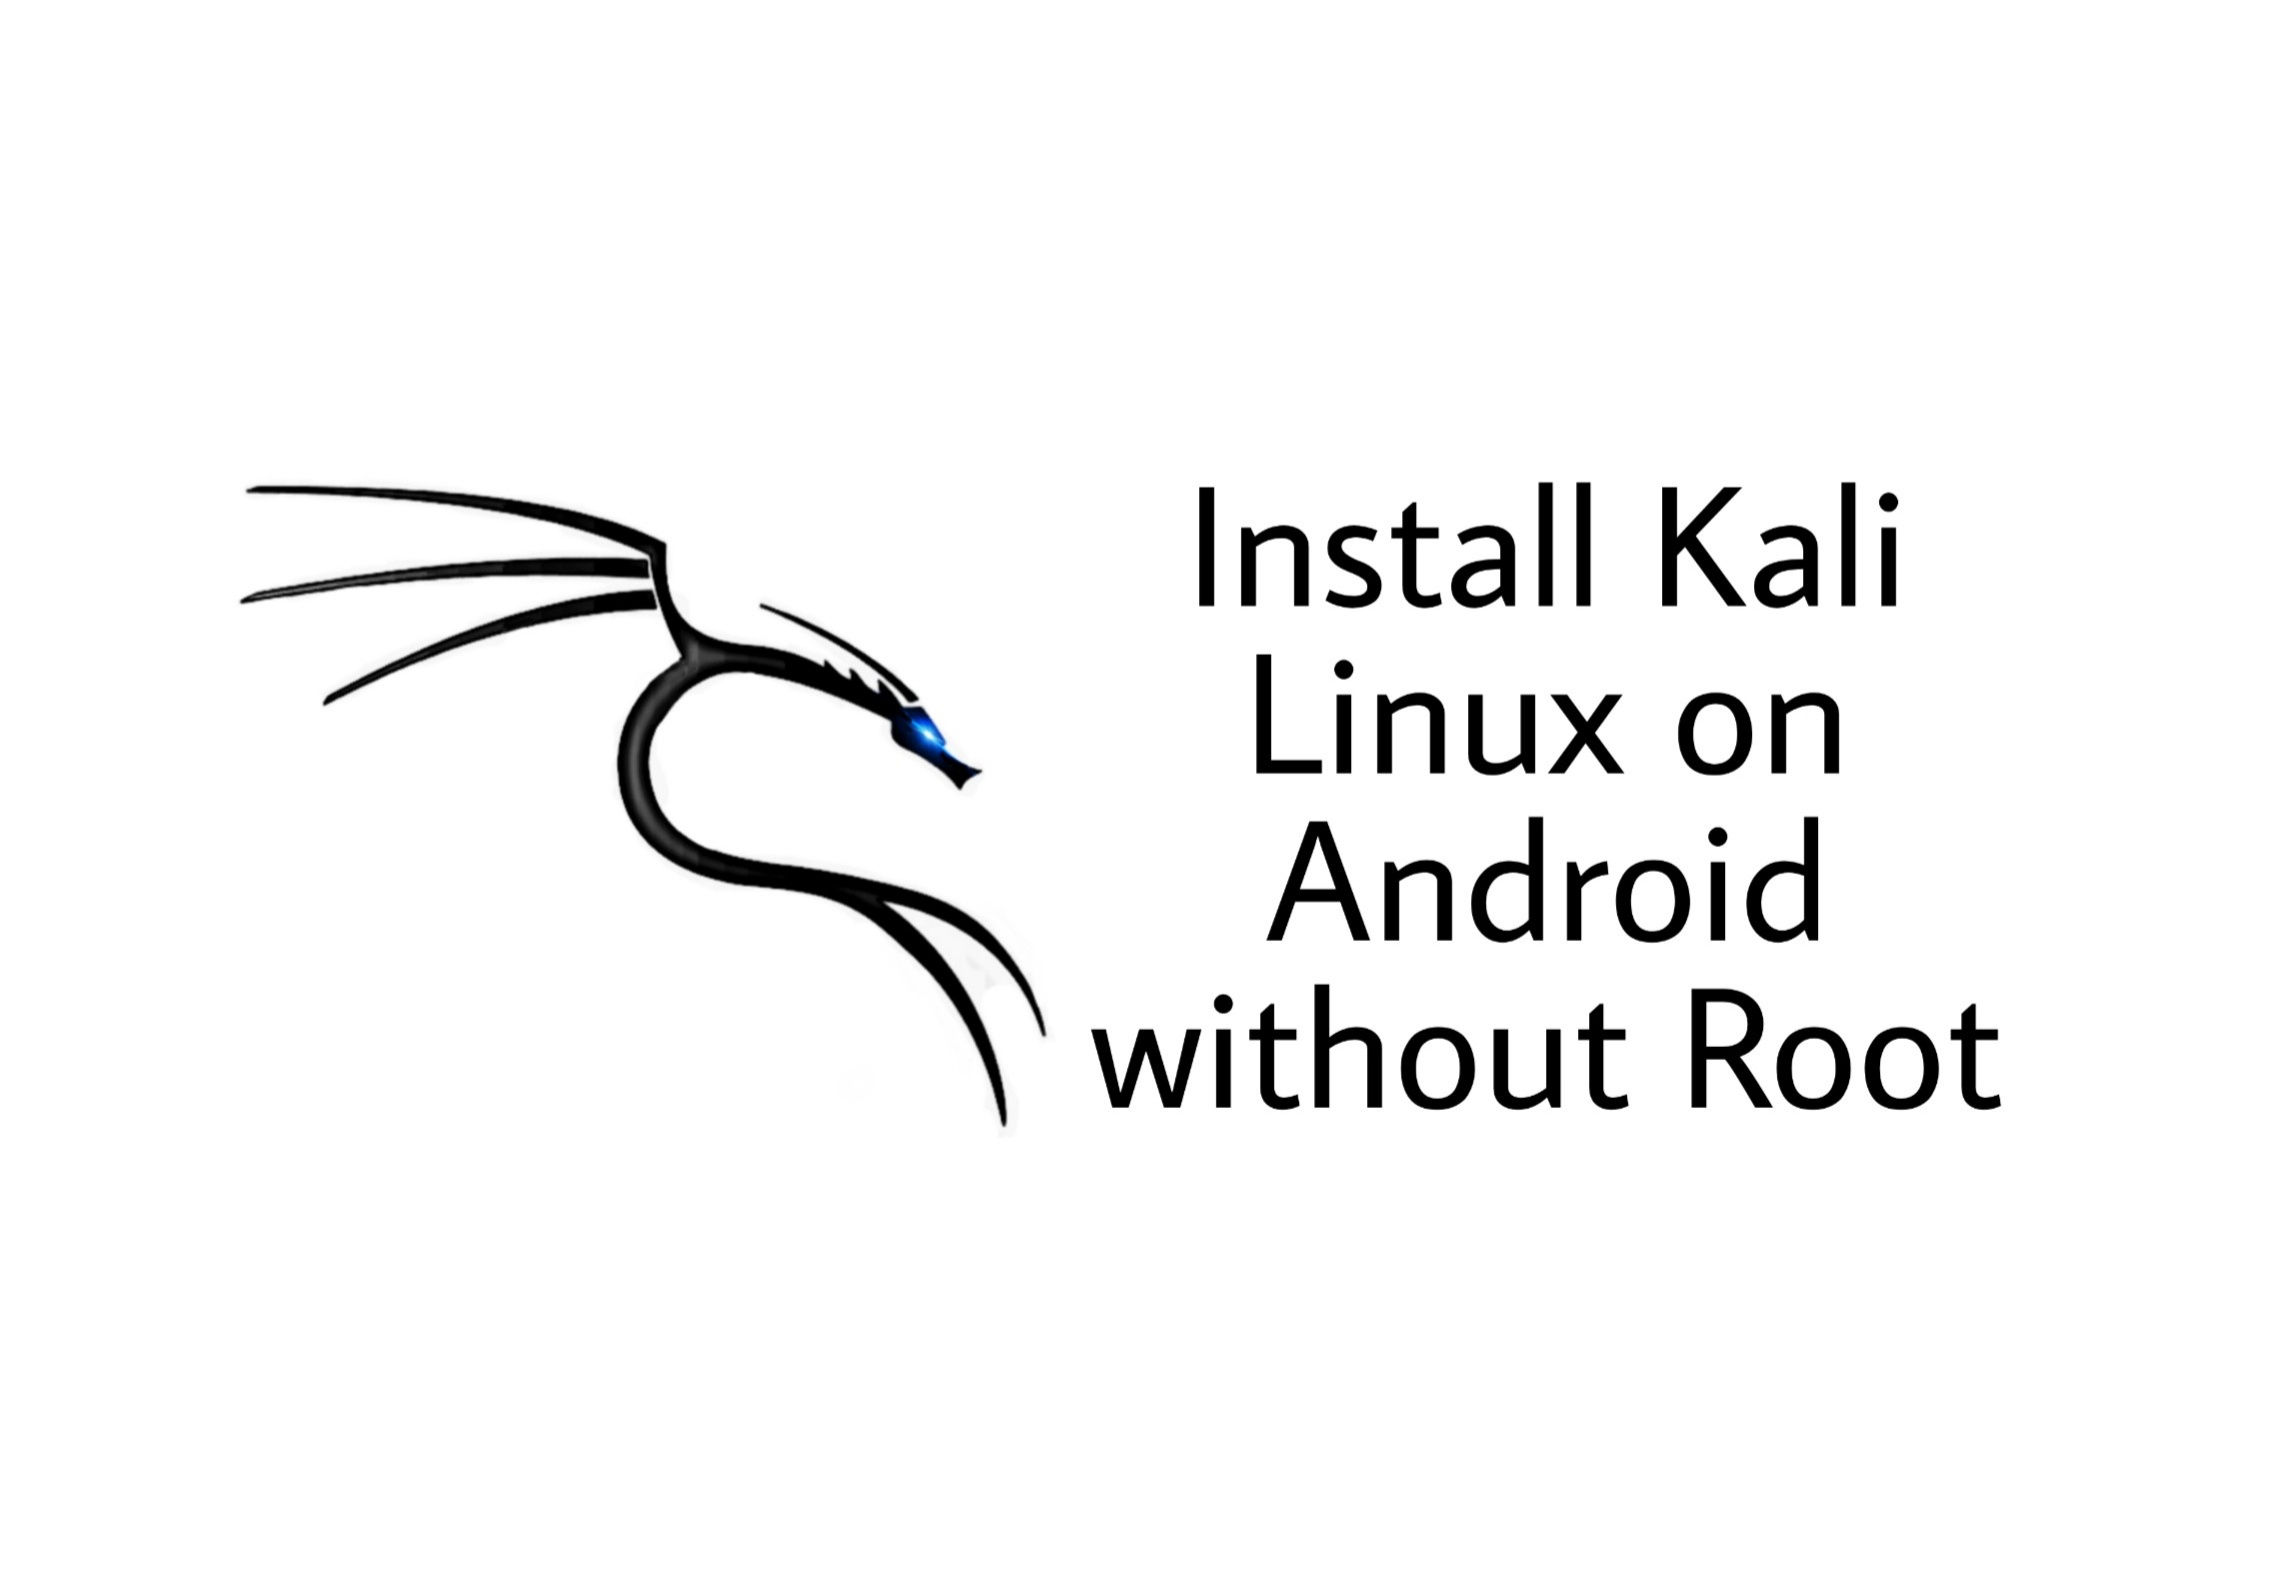 Install kali linux on android without root